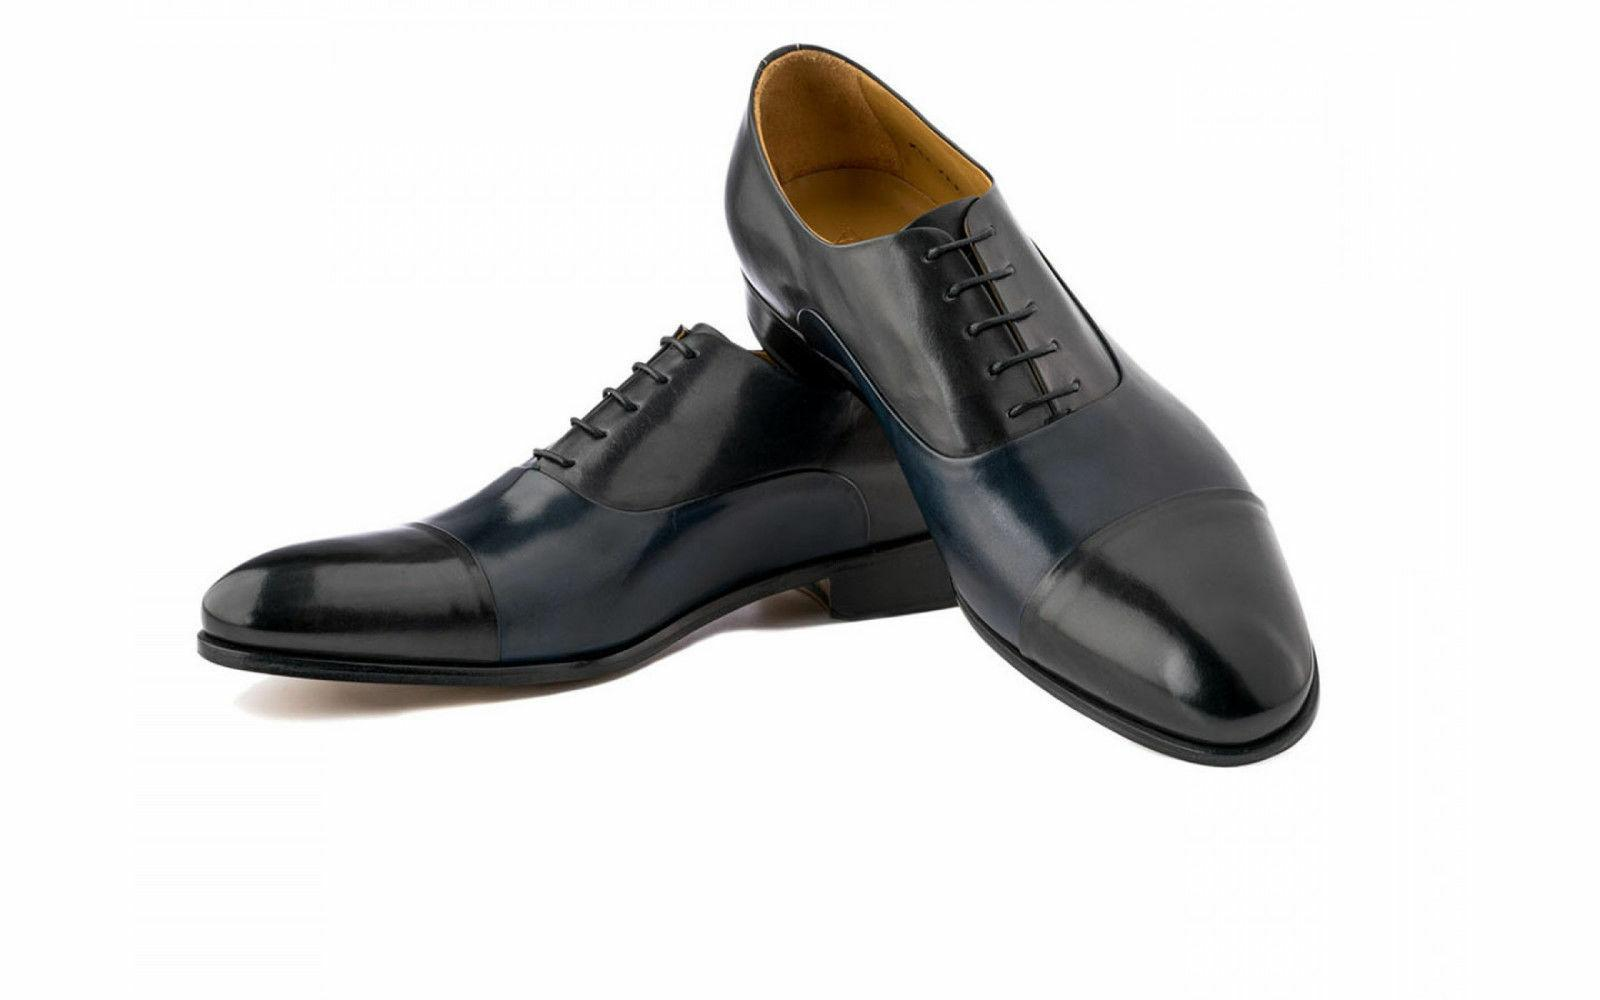 Genuine Leather Dress Shoes Handmade Oxfords Style Casual Fo